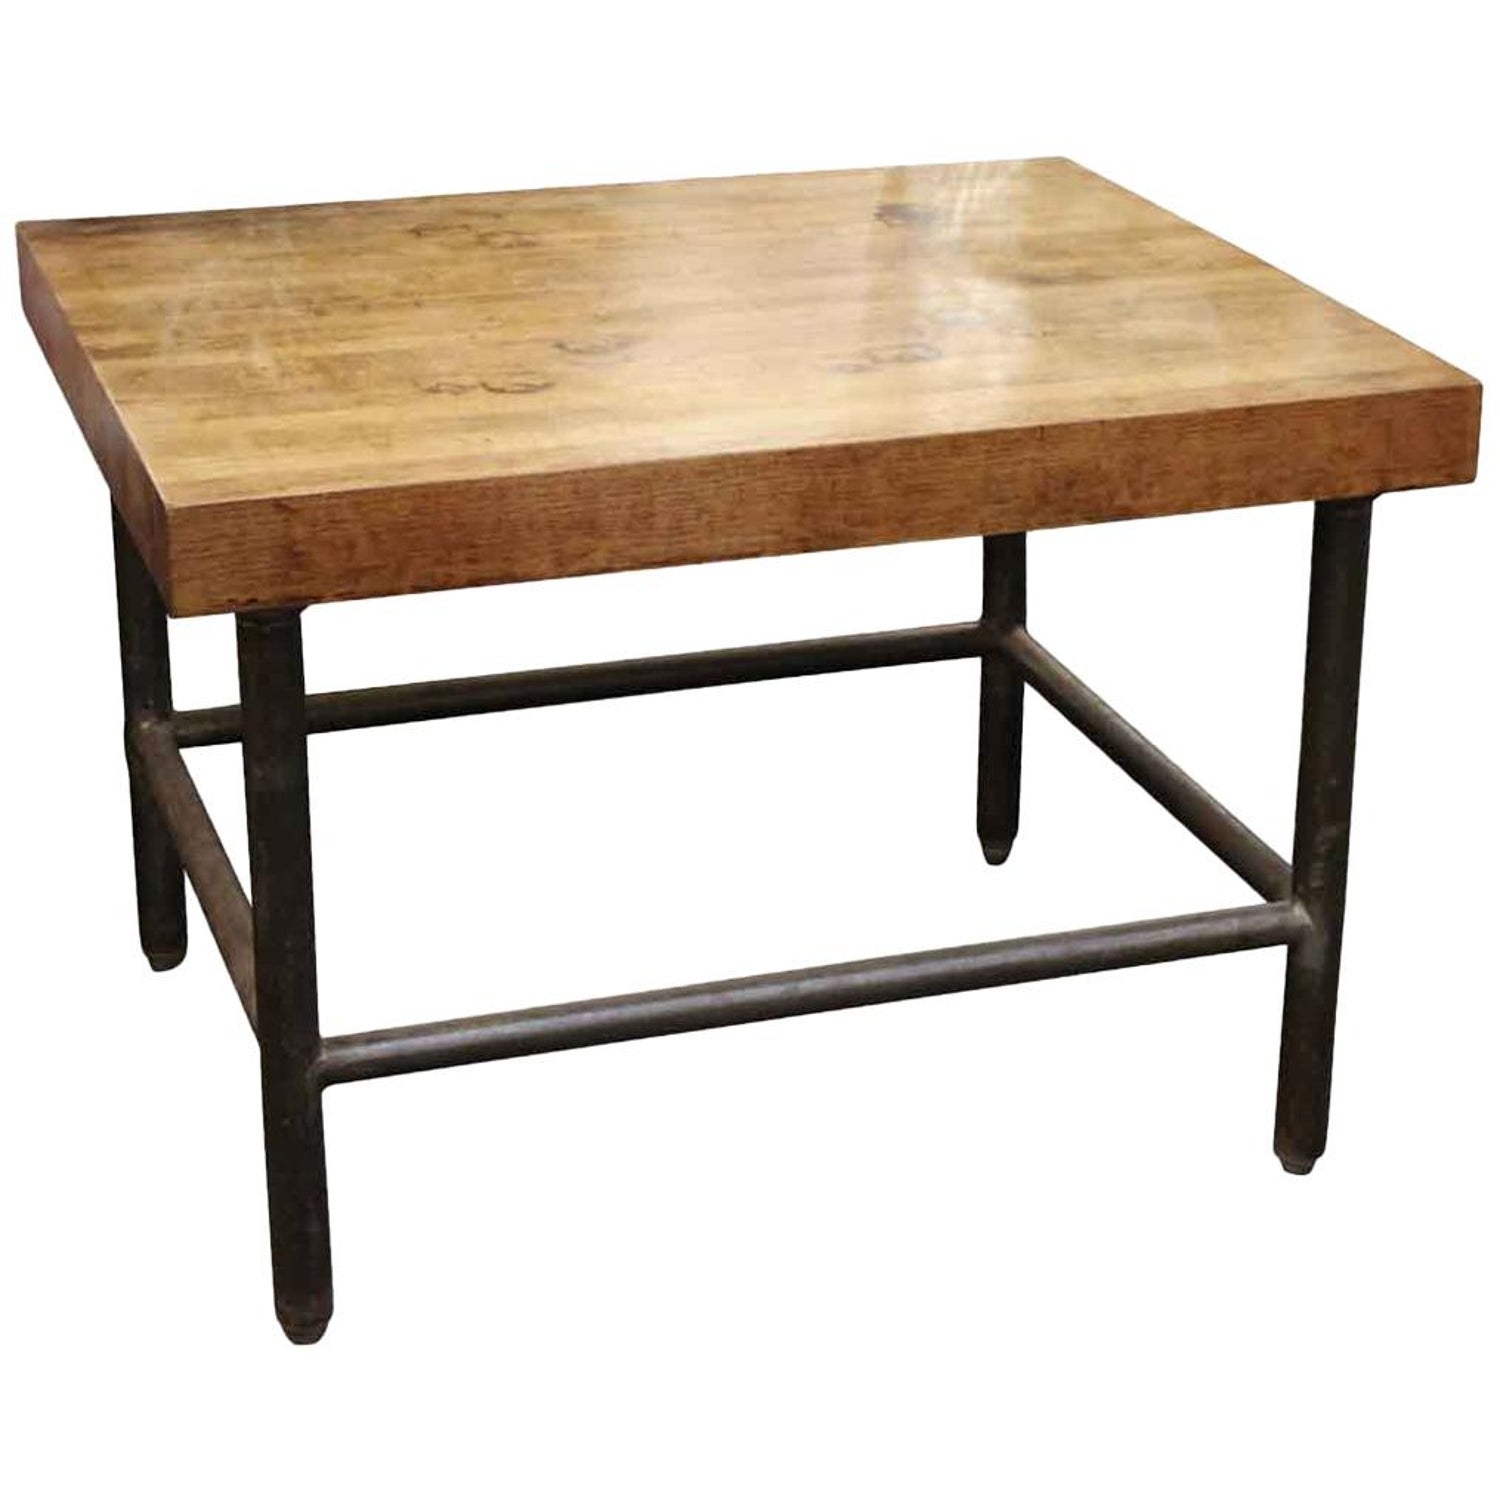 Cool 1990S Butcher Block Table With Black Pipe Legs For Sale At Machost Co Dining Chair Design Ideas Machostcouk